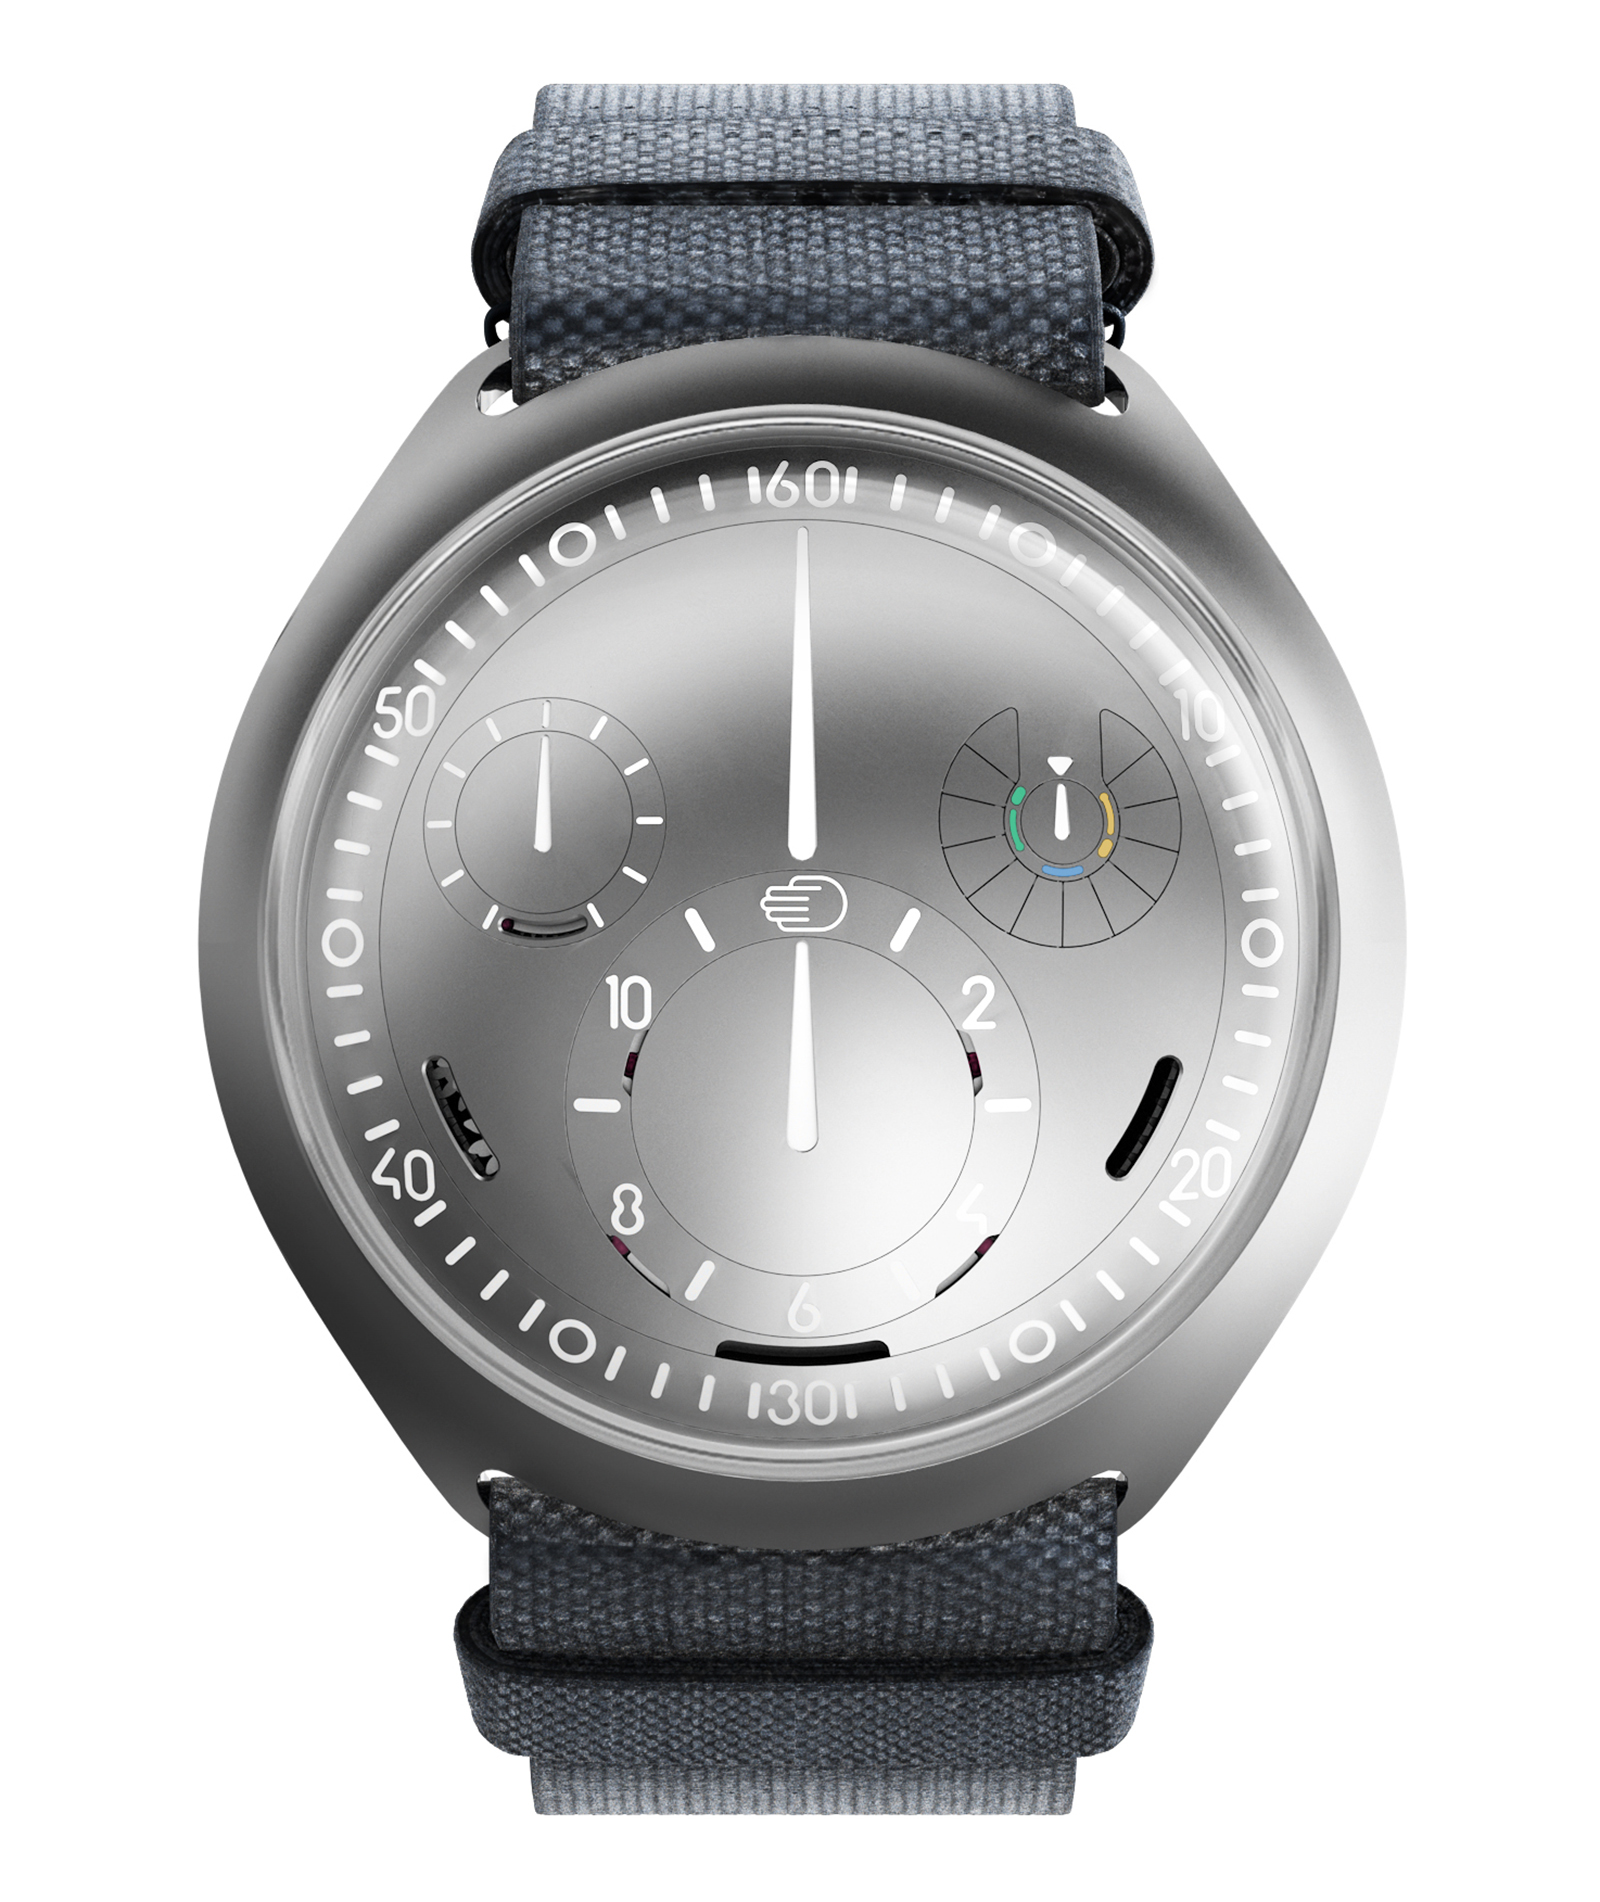 Ressence Type 2 e-Crown Concept 4.1